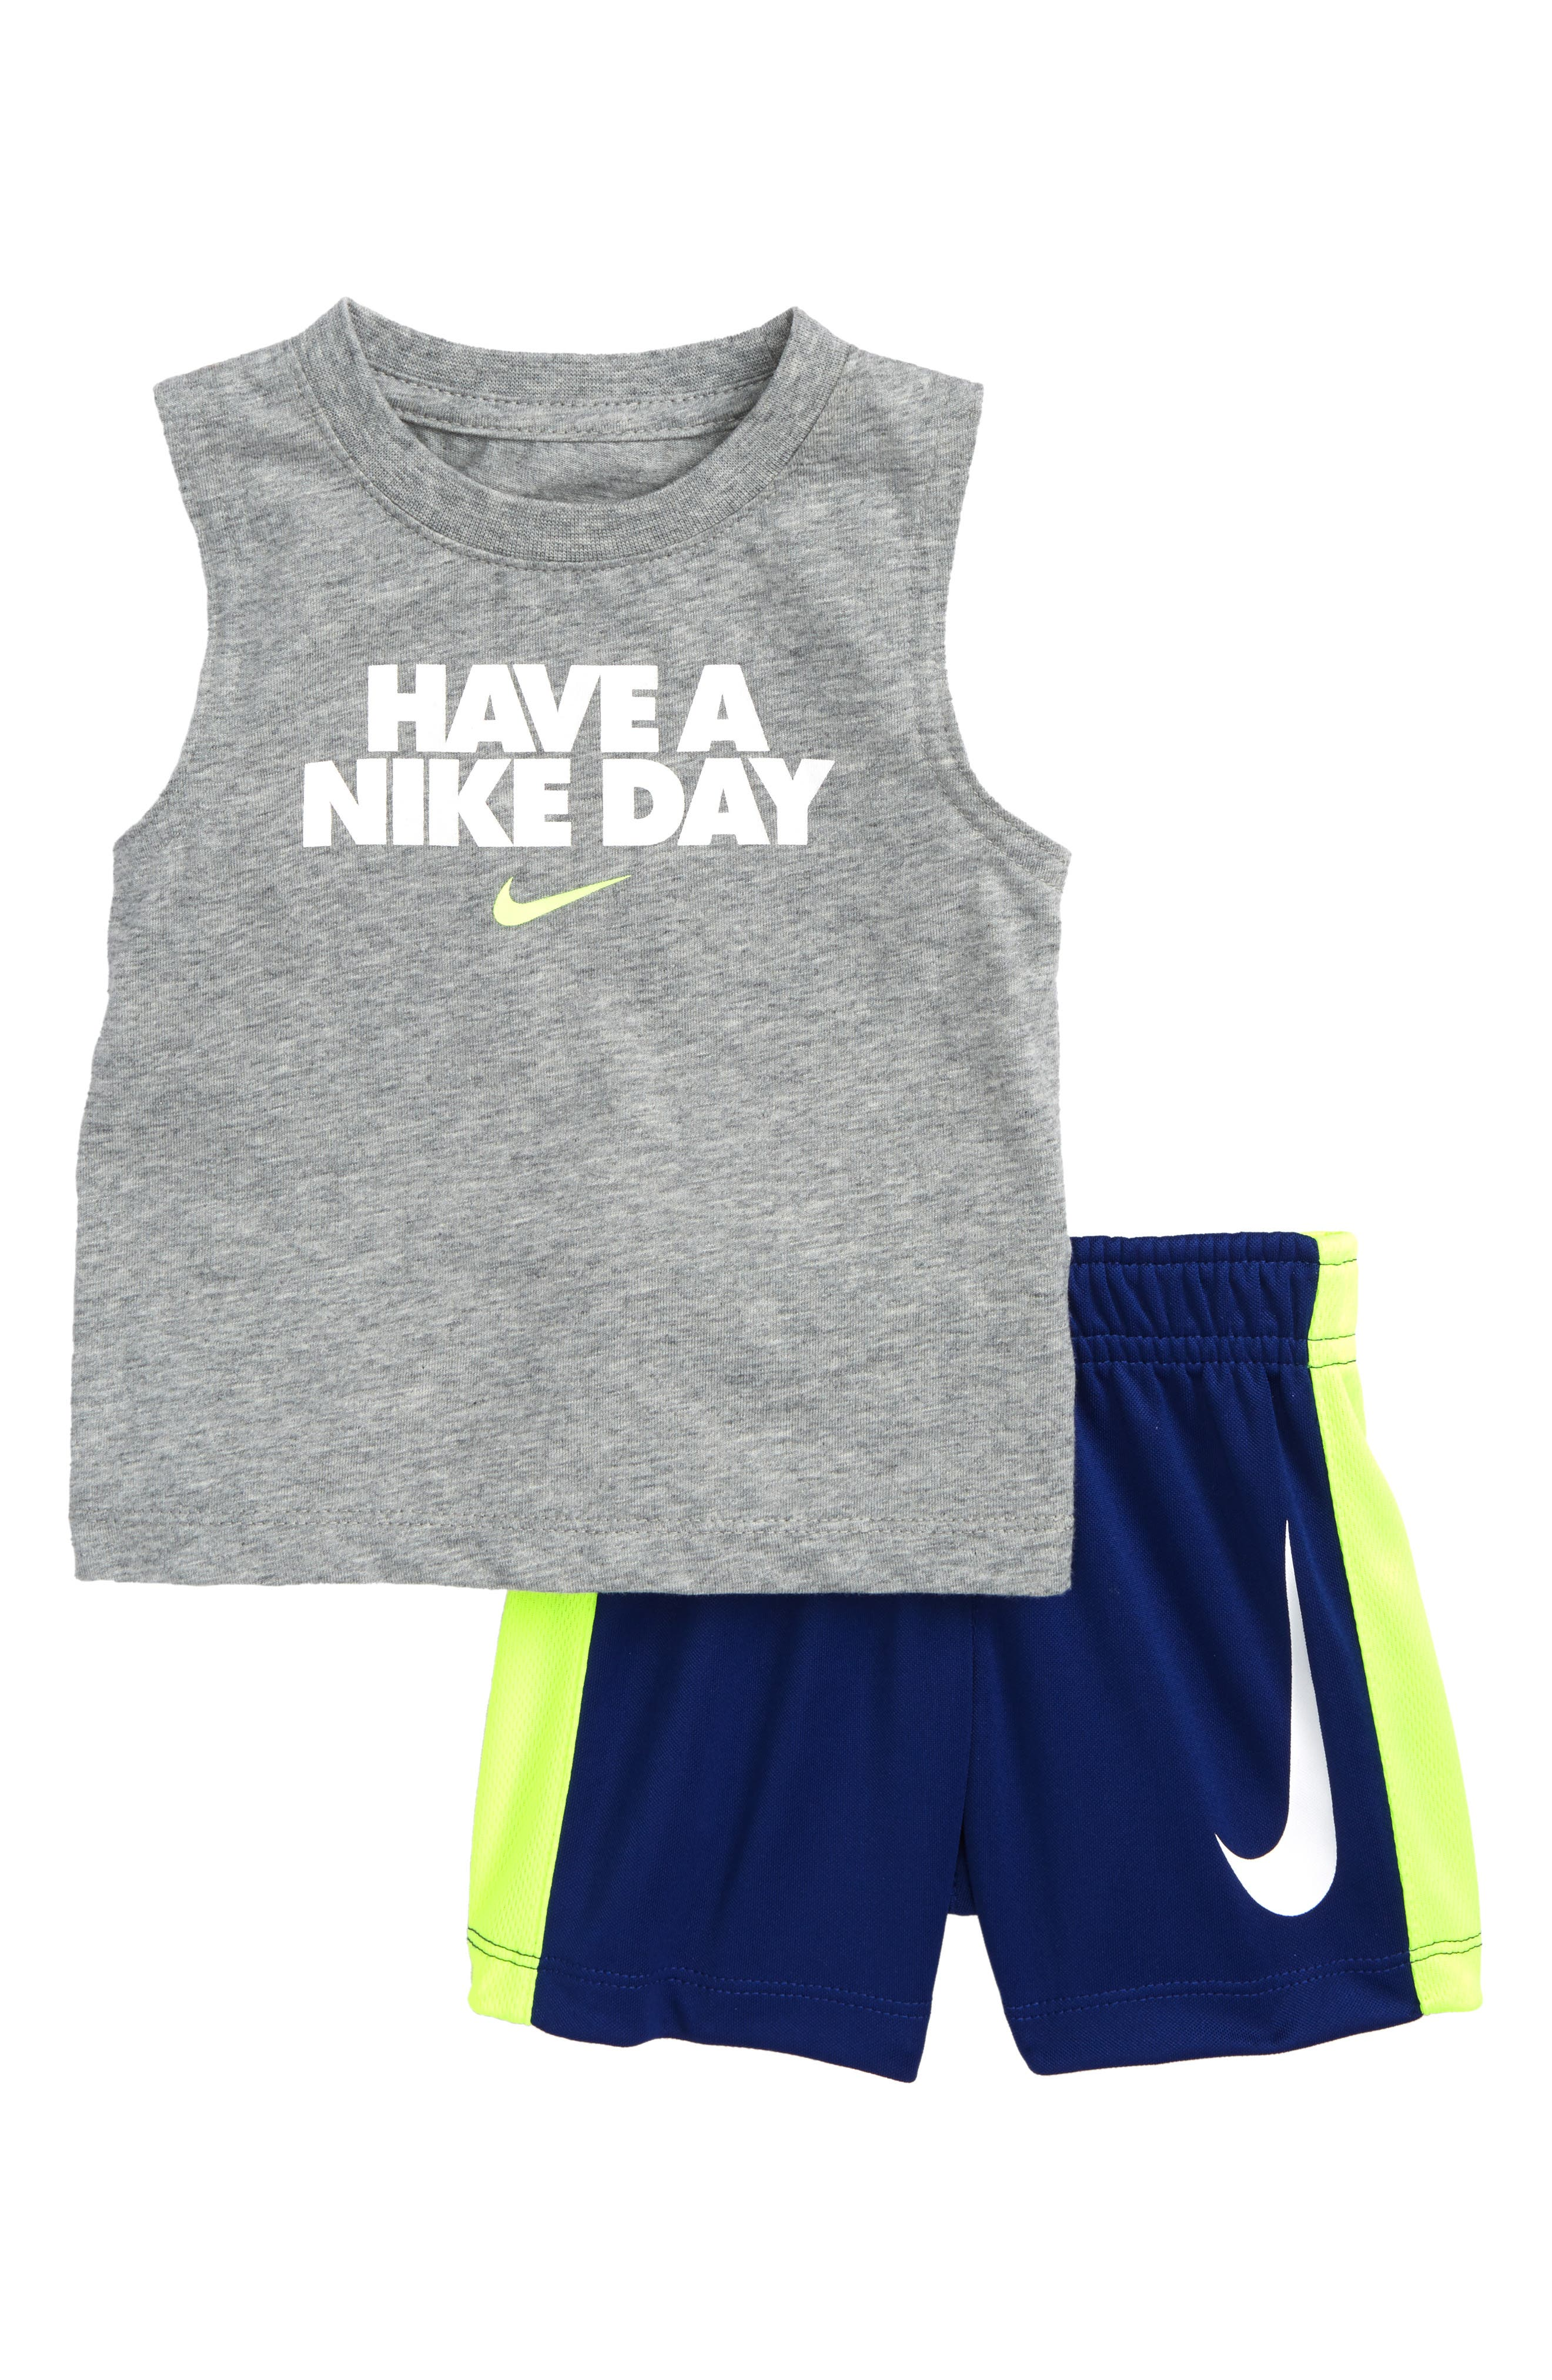 Have a Nike Day Tank Top & Shorts Set,                         Main,                         color, 433